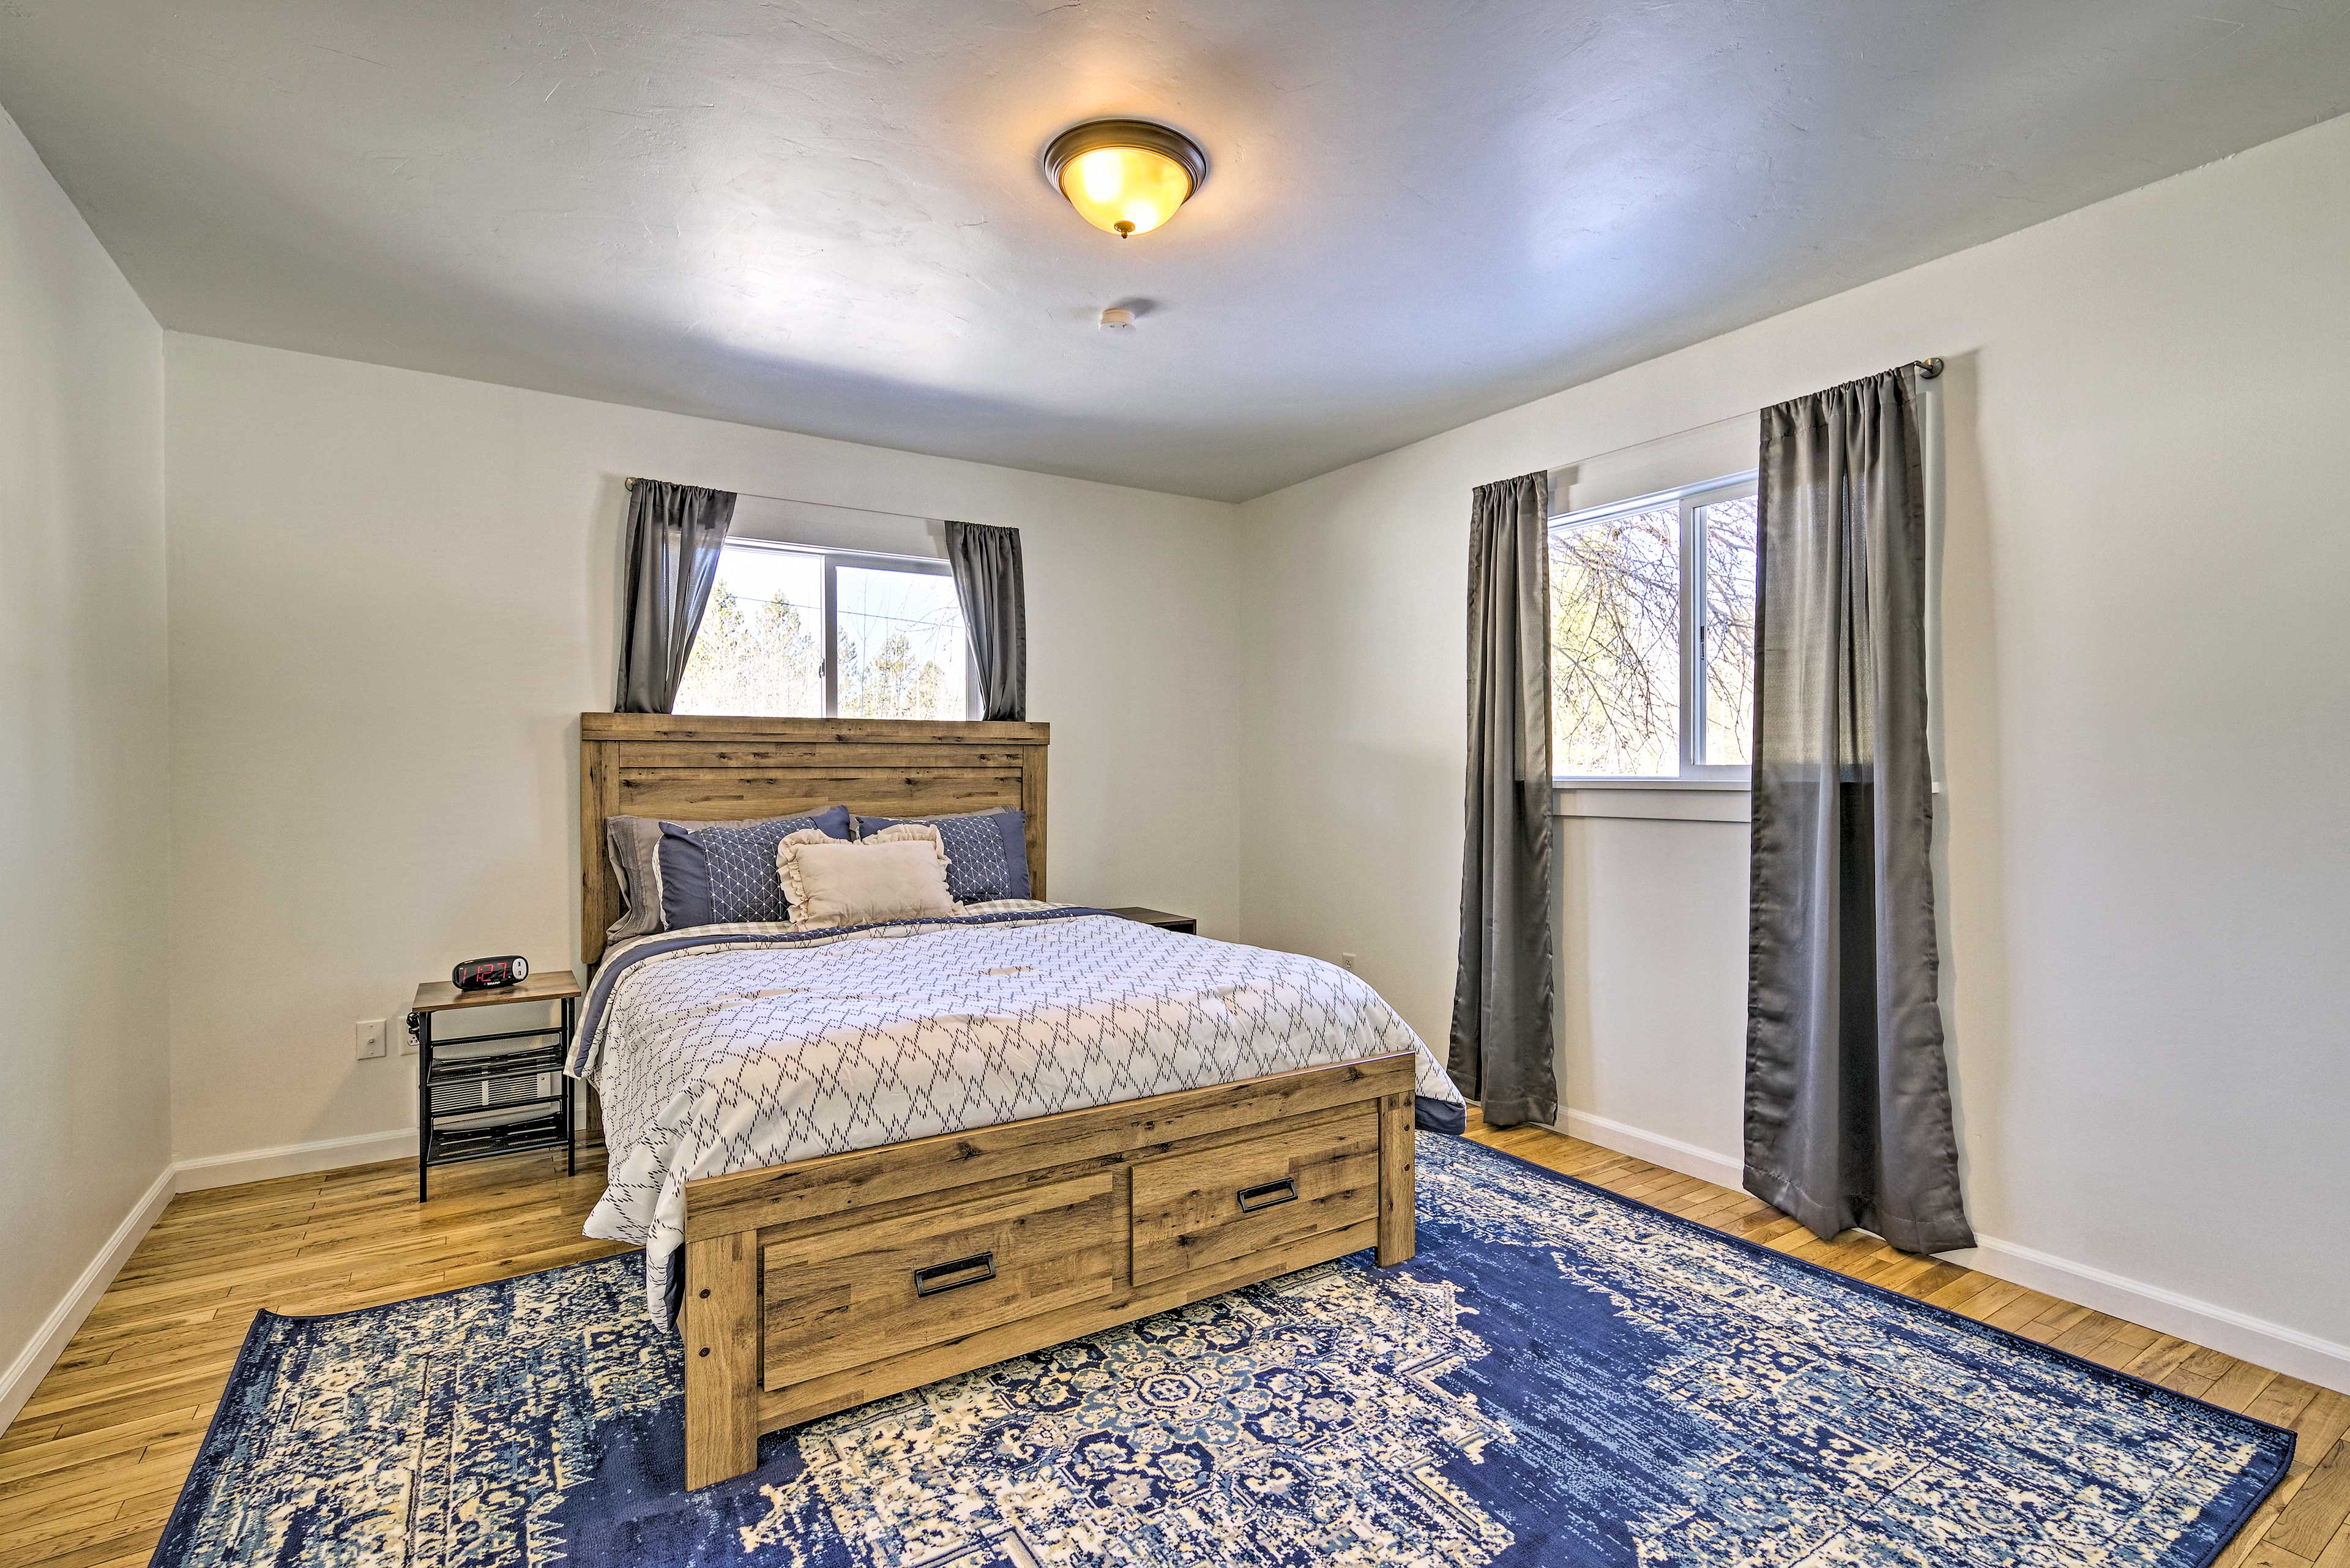 The second bedroom is equipped with a queen bed.